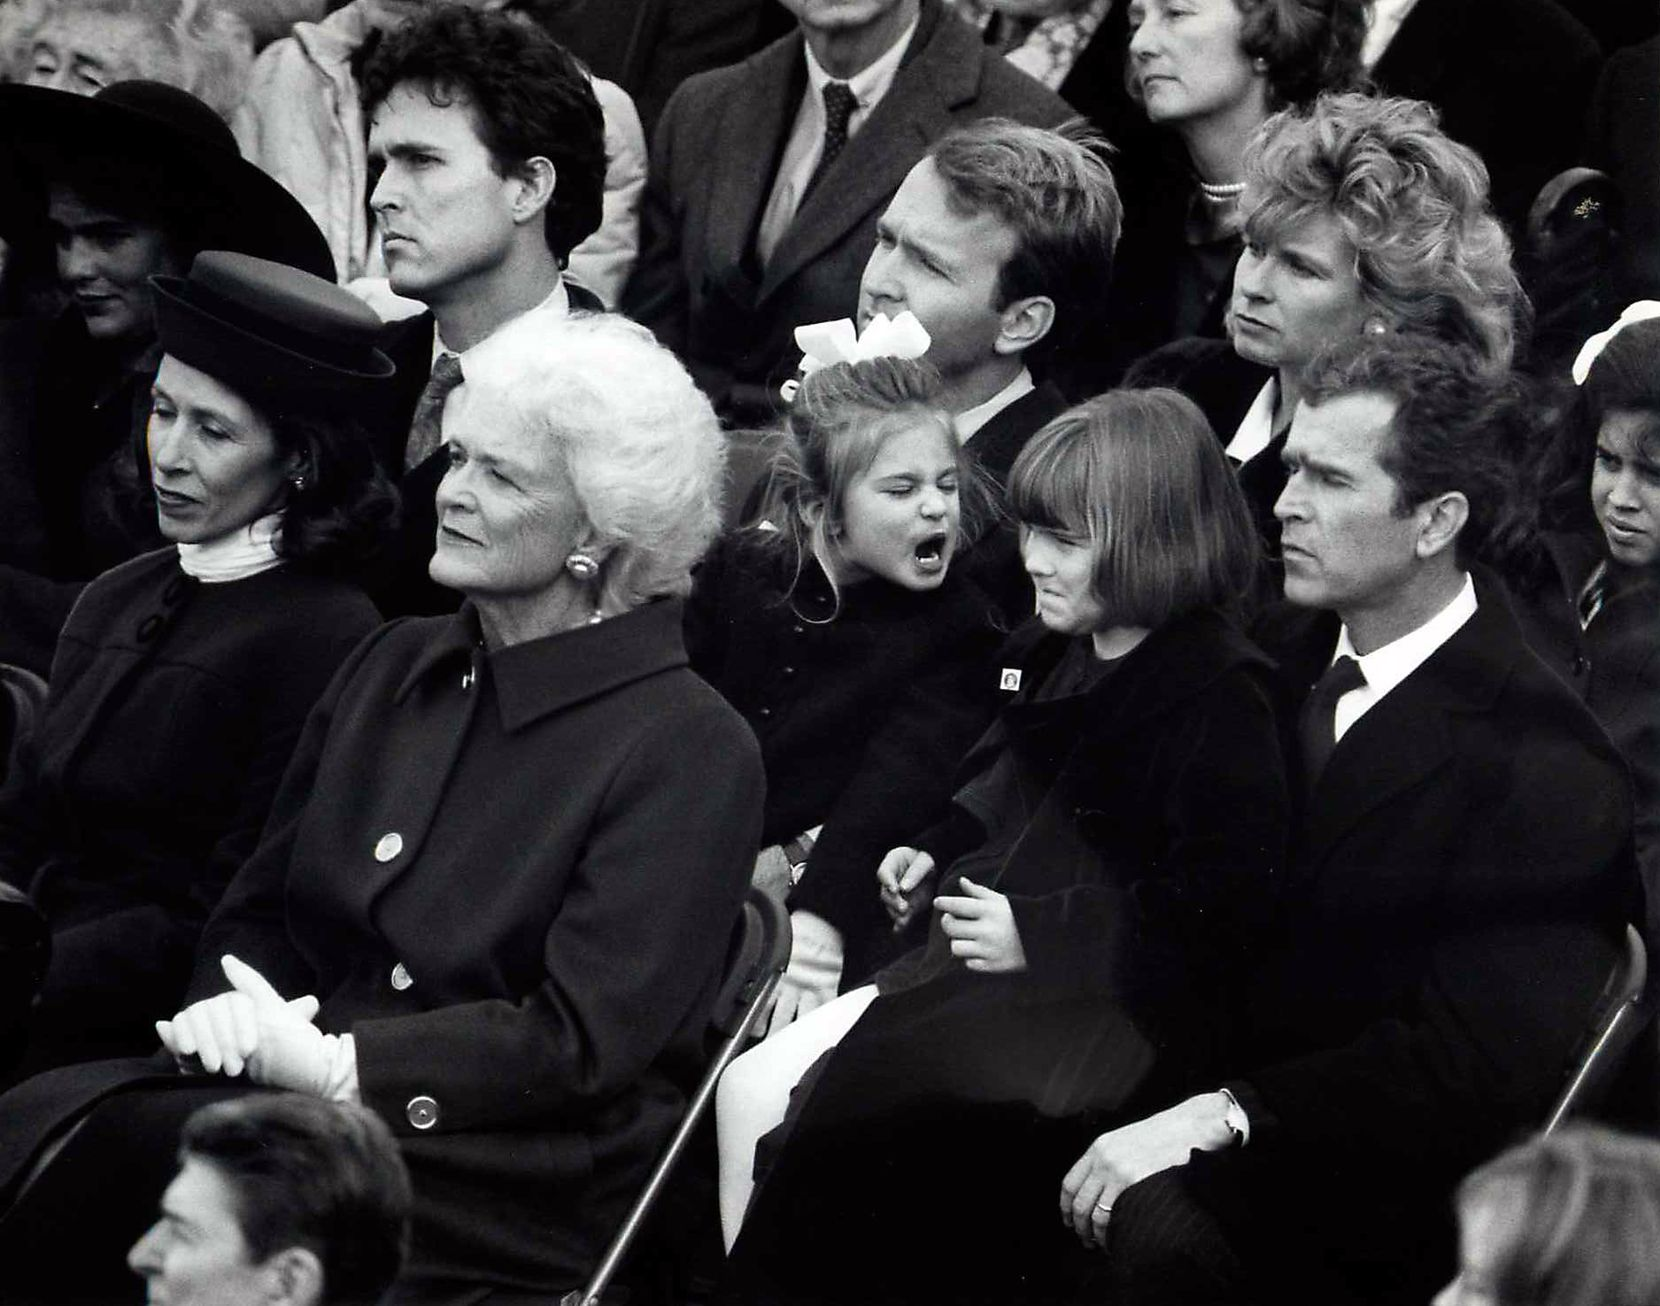 Barbara Bush watches as her husband George H.W. Bush is inaugurated president of the United States on Jan. 20, 1989. Behind her, George W. Bush holds his daughter Jenna, 7,  on his lap as she and her cousin Lauren Bush, 4, (on the lap of her father, Neil) have a disagreement.